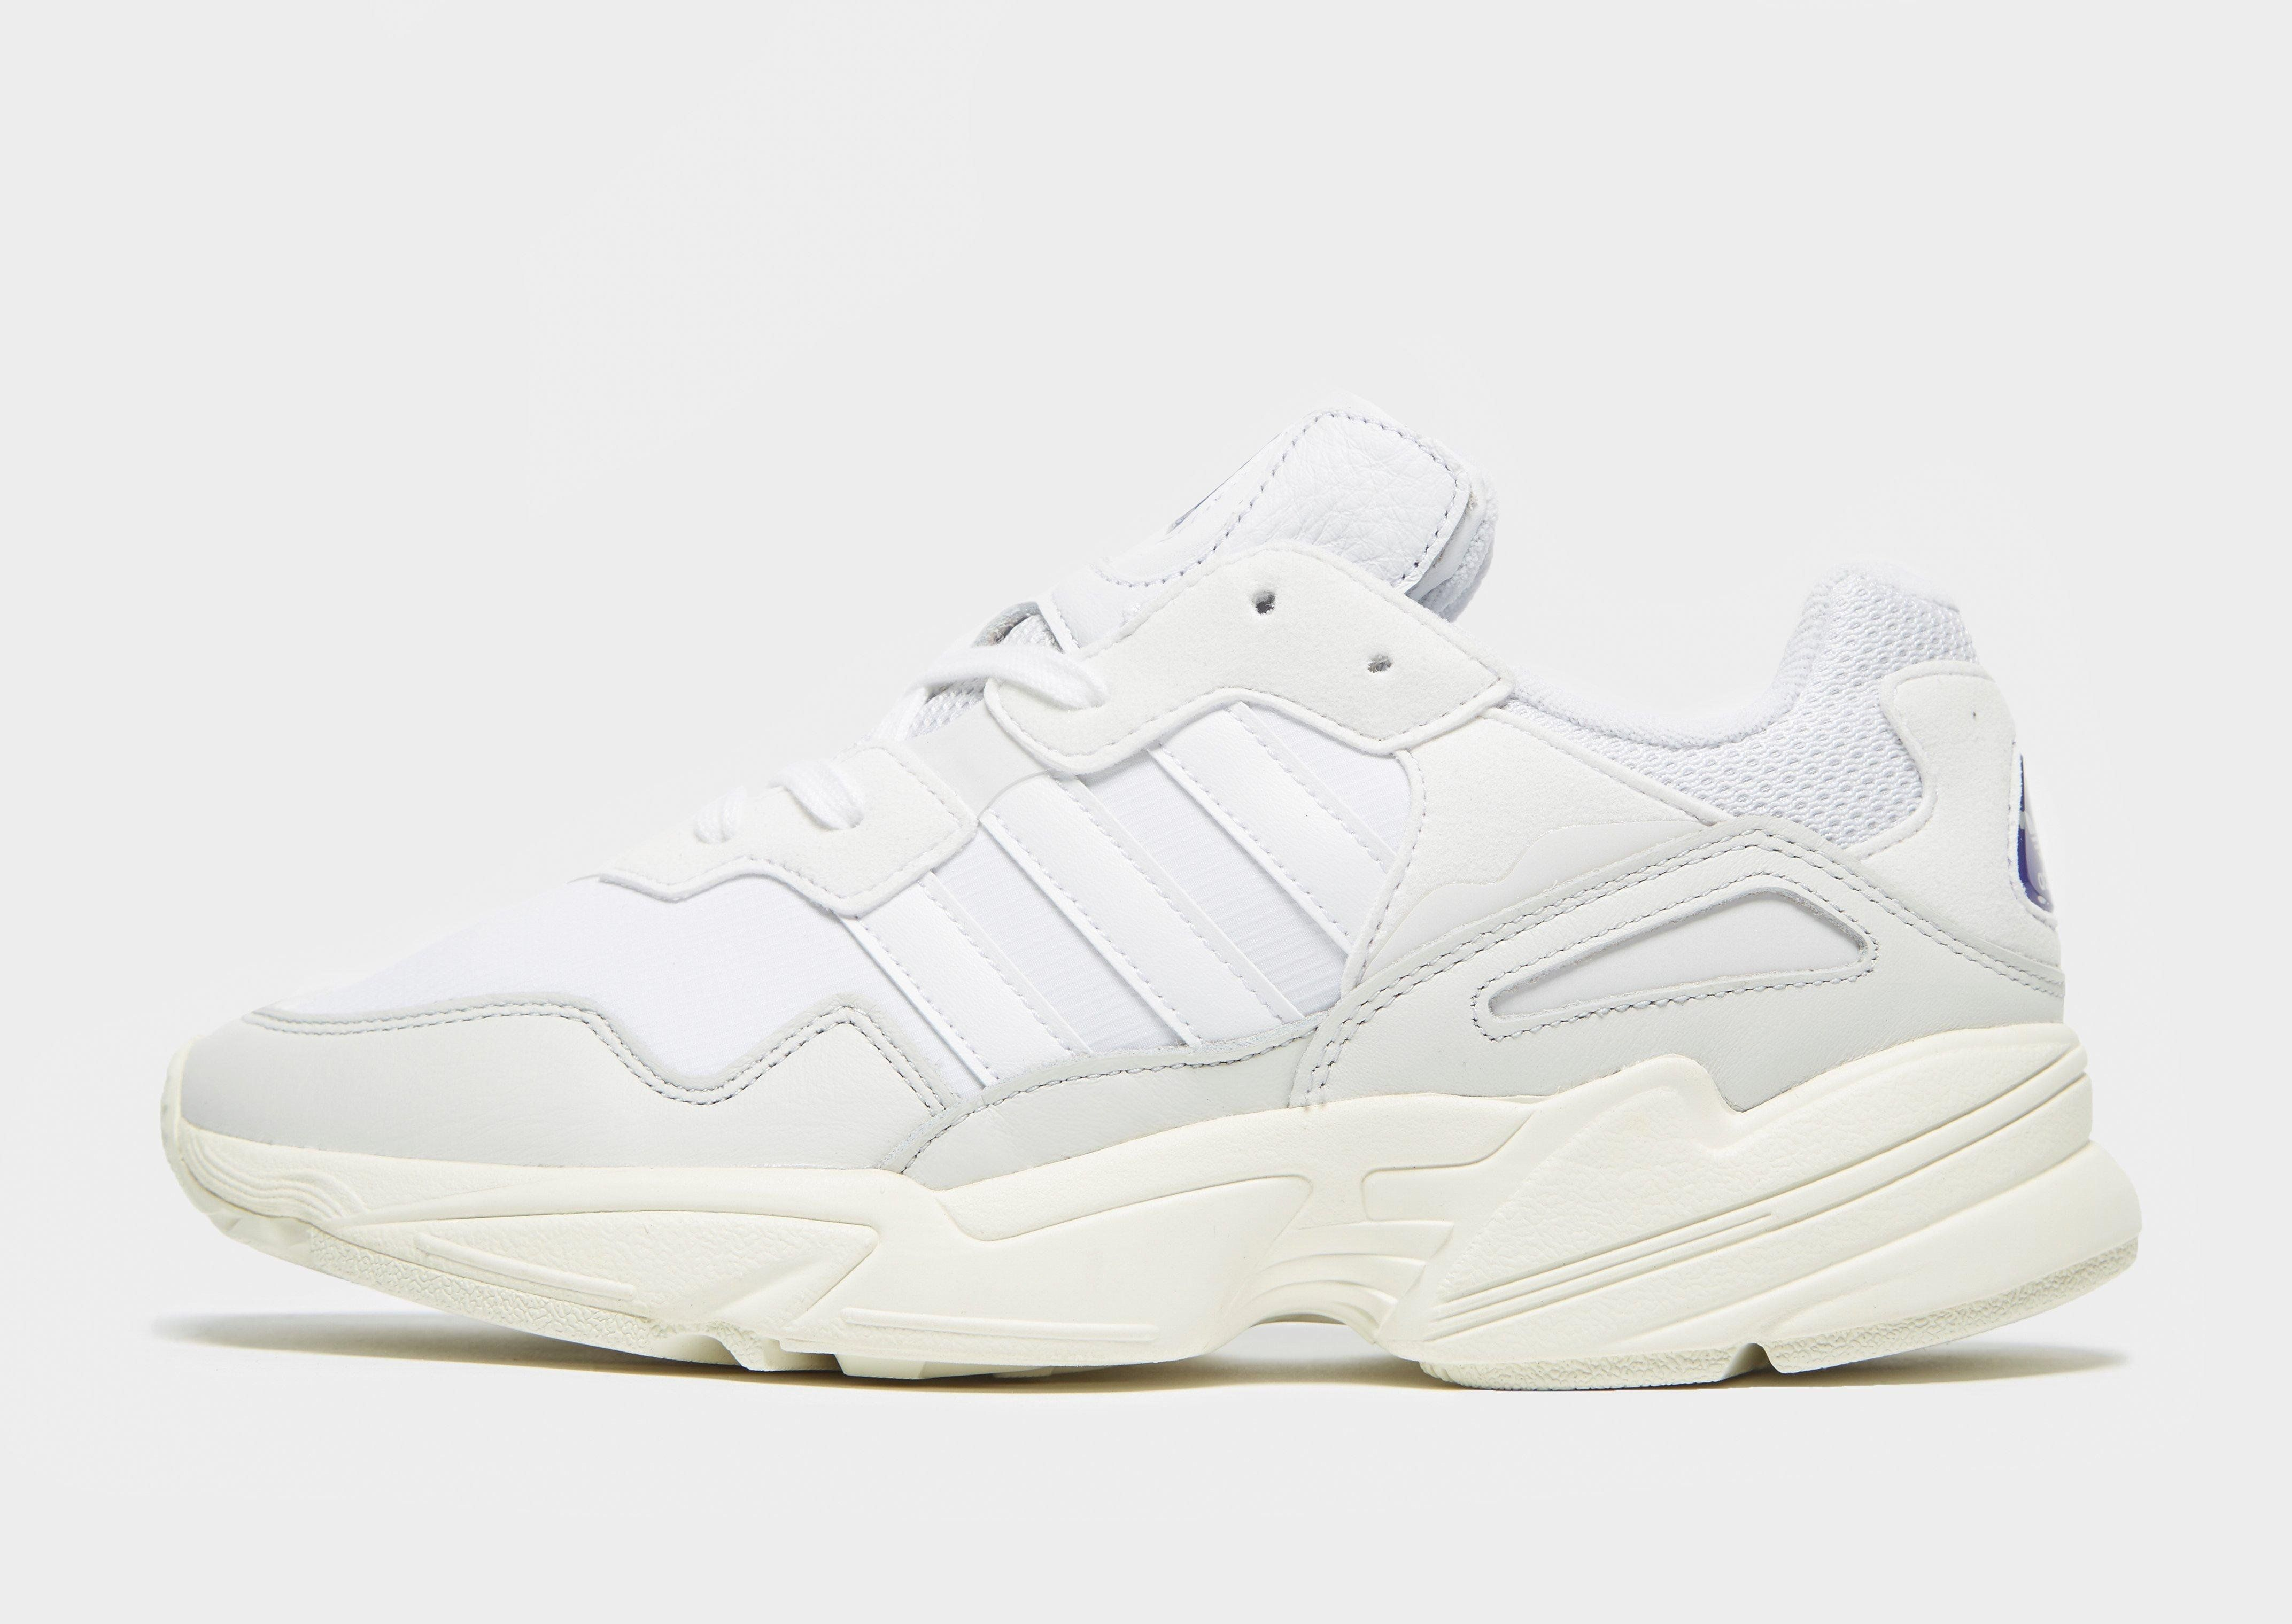 Adidas Originals Yung 96 Jd Sports